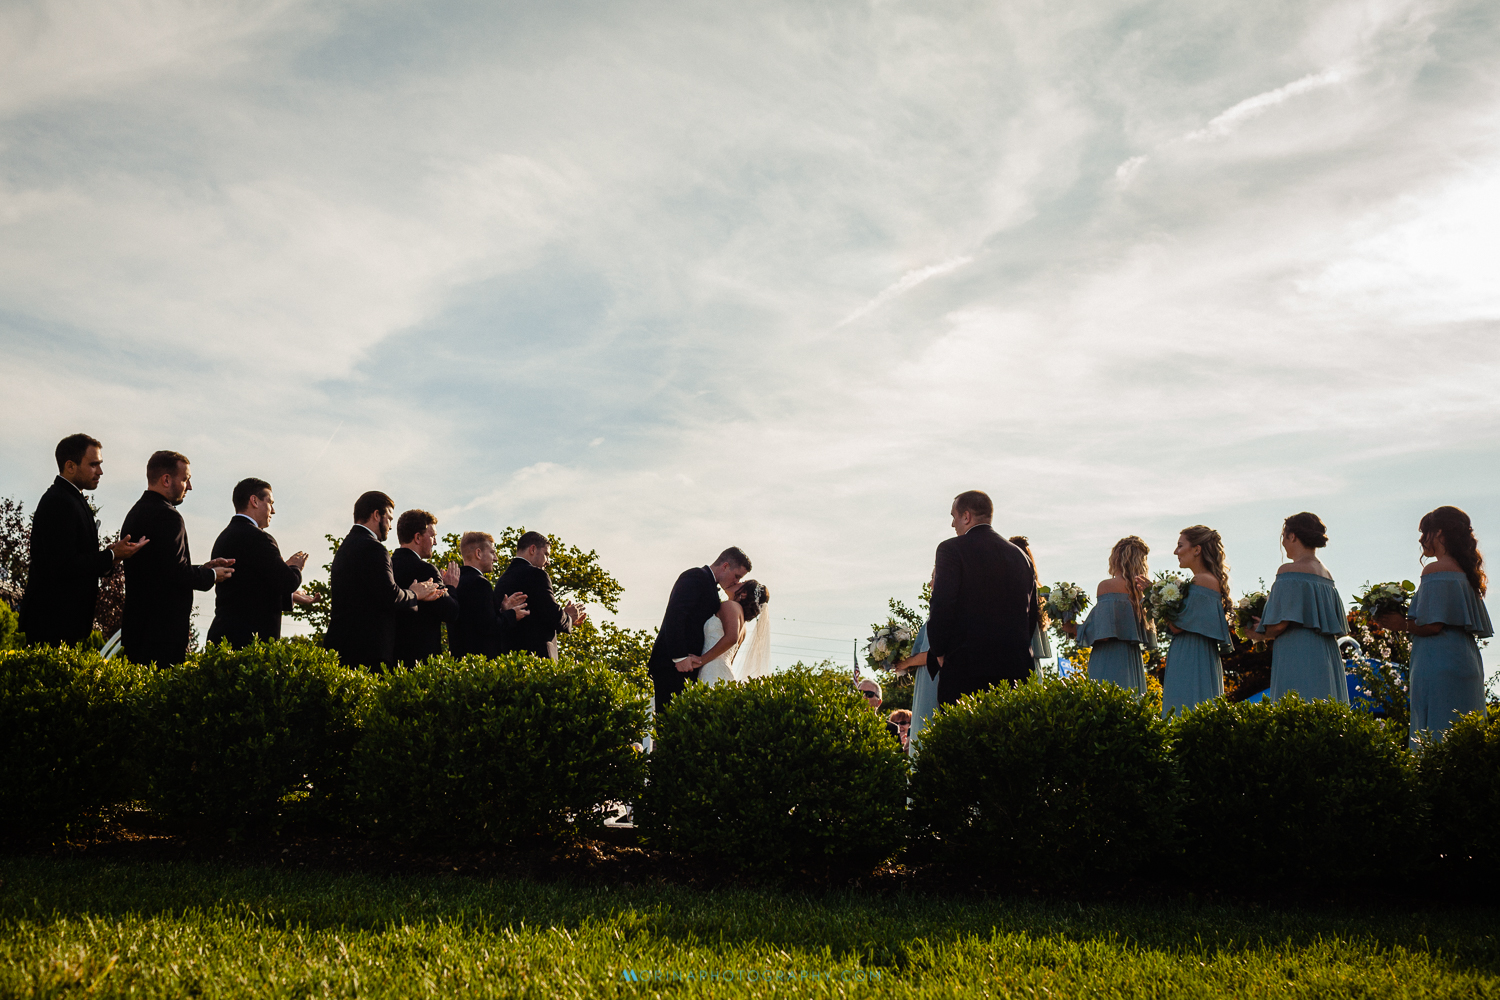 Amanda & Austin wedding at Crystal Point Yacht Club 84.jpg